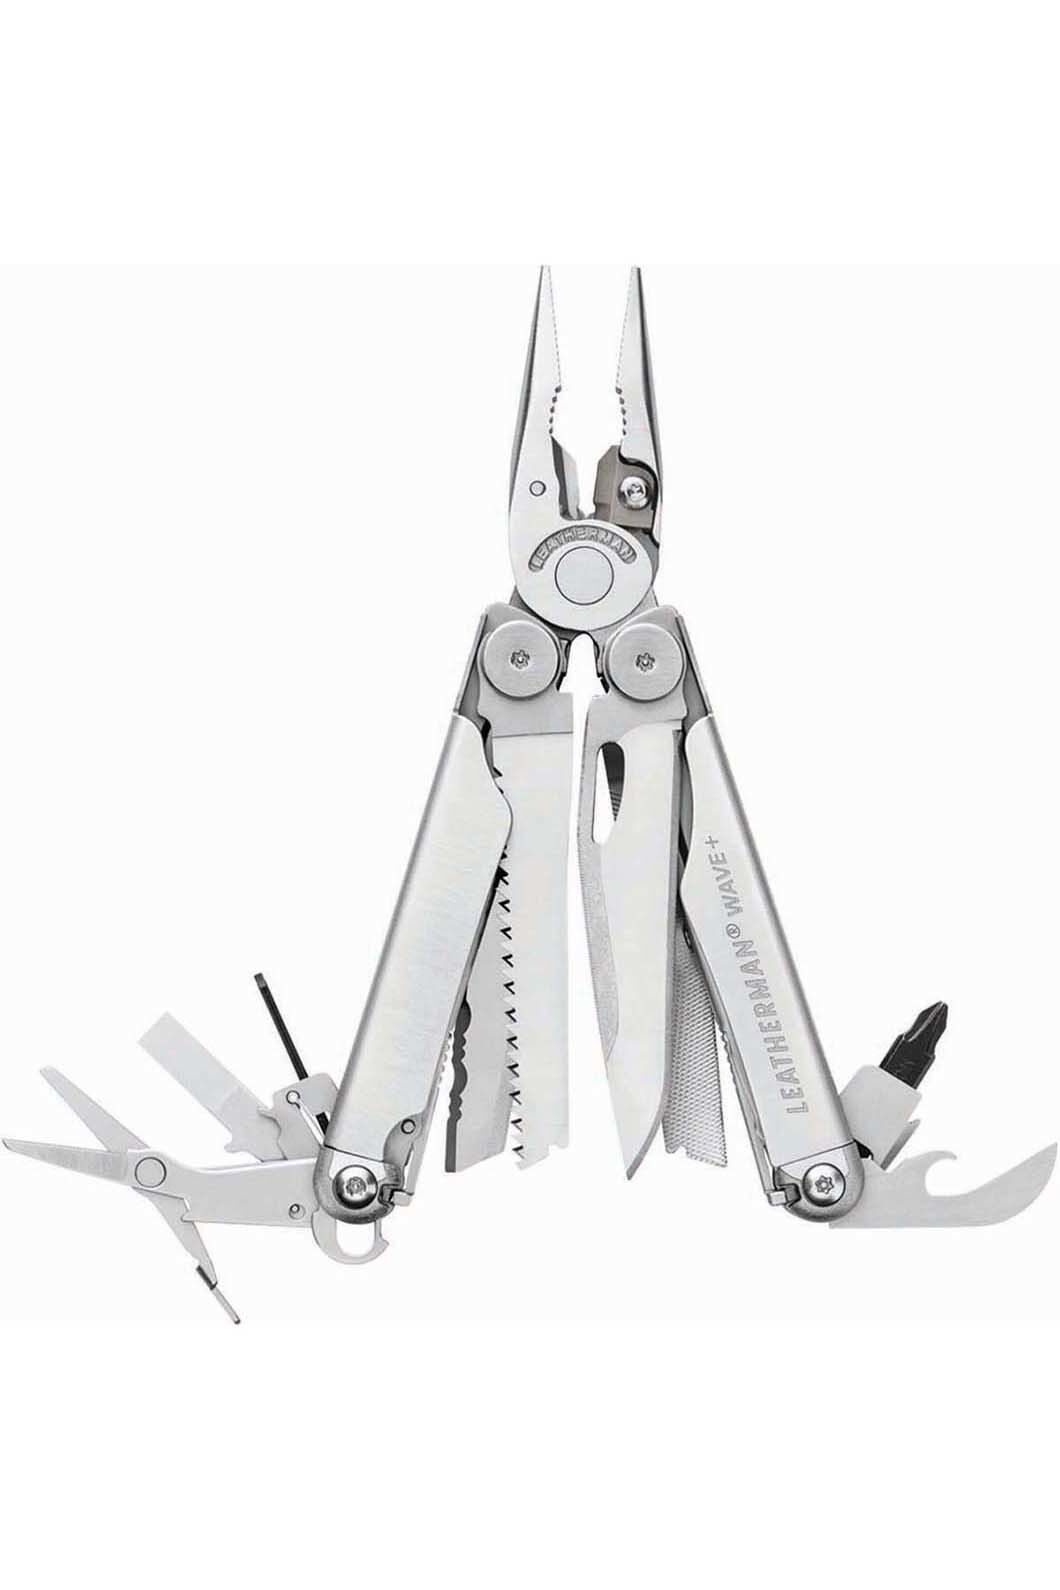 Leatherman Wave Pl7 in One Multi-Tool, None, hi-res